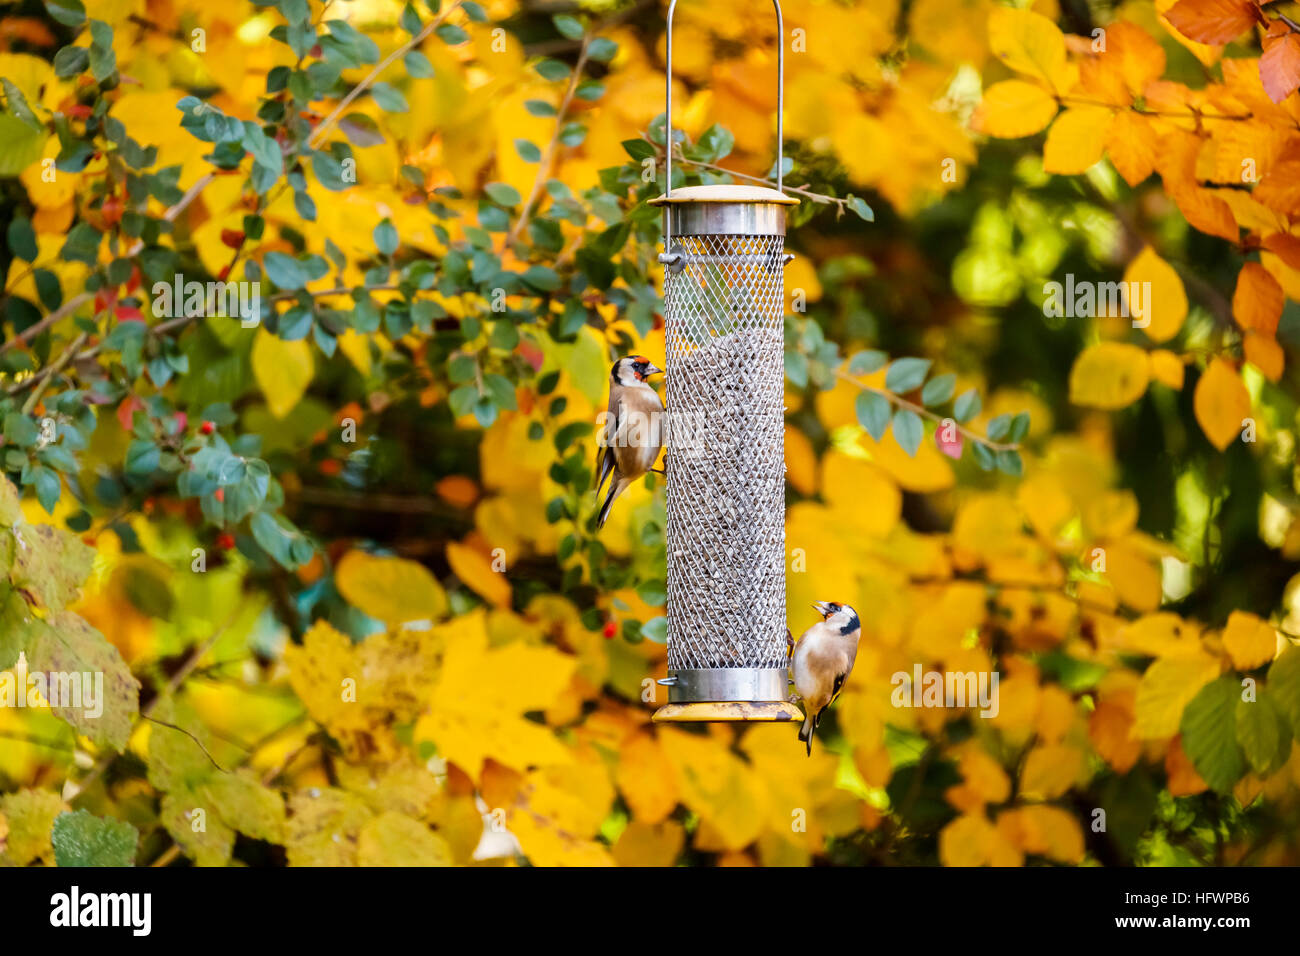 Two European goldfinches (Carduelis carduelis), small English garden birds, feeding at a birdfeeder in autumn in - Stock Image